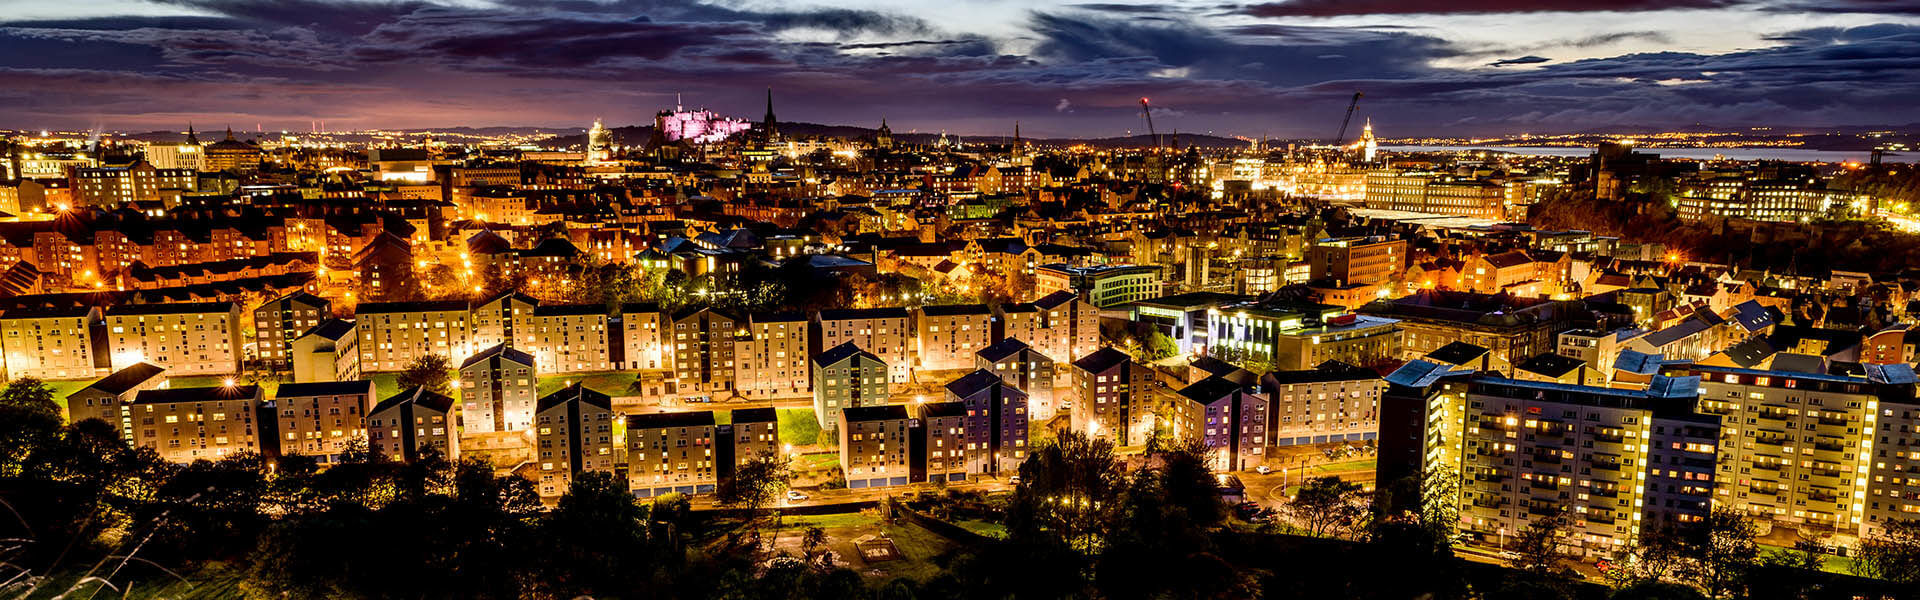 Golden City of Edinburgh - Spectacular Edinburgh Photography